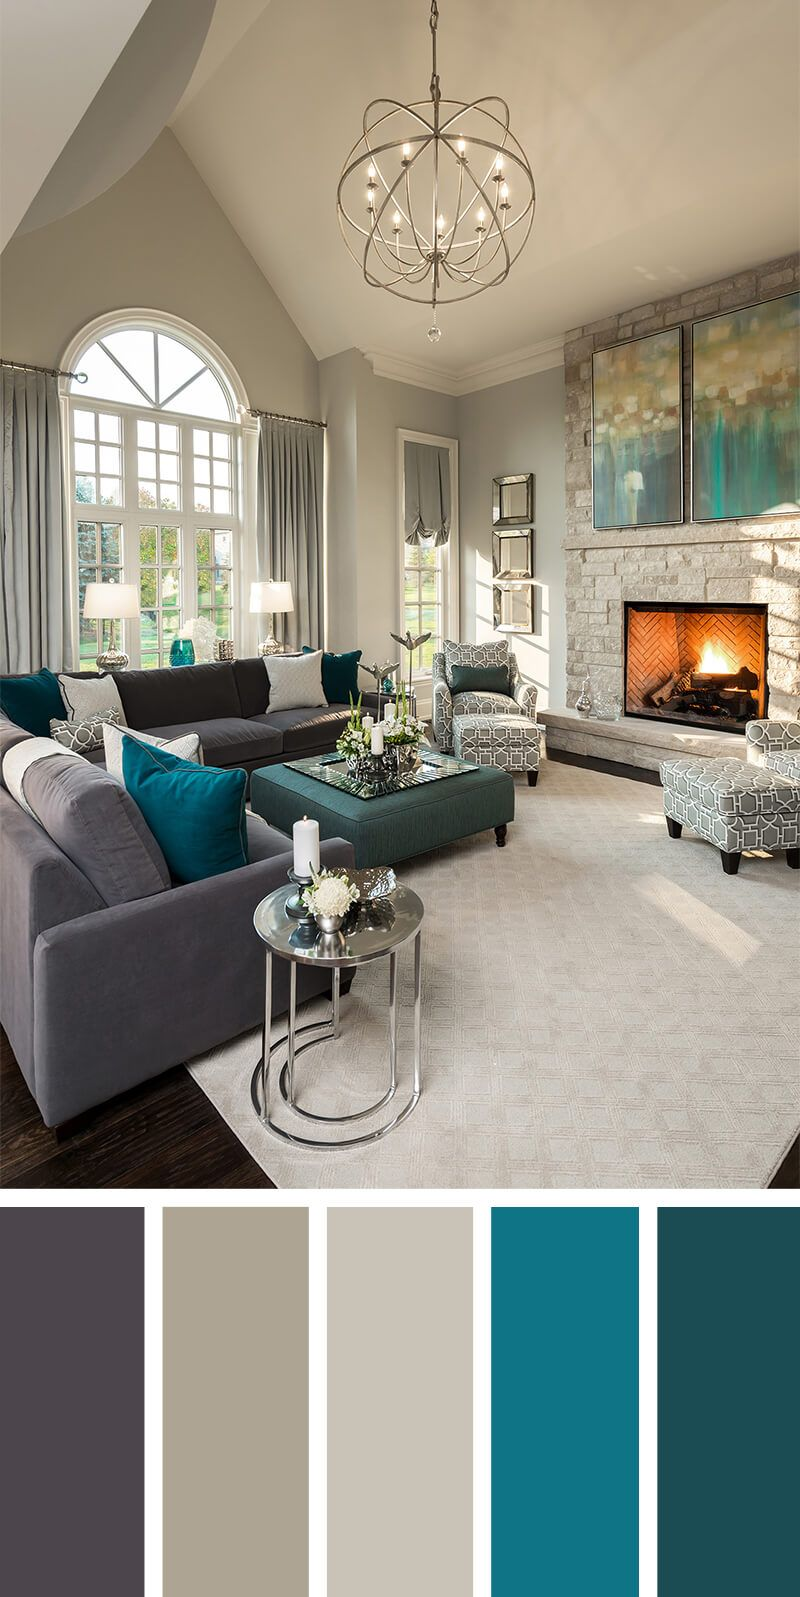 Living Room Color Scheme Ideas Can Help You To Create A That S Worthy Of Showing Up In Home Décor Magazine Find The Best Designs